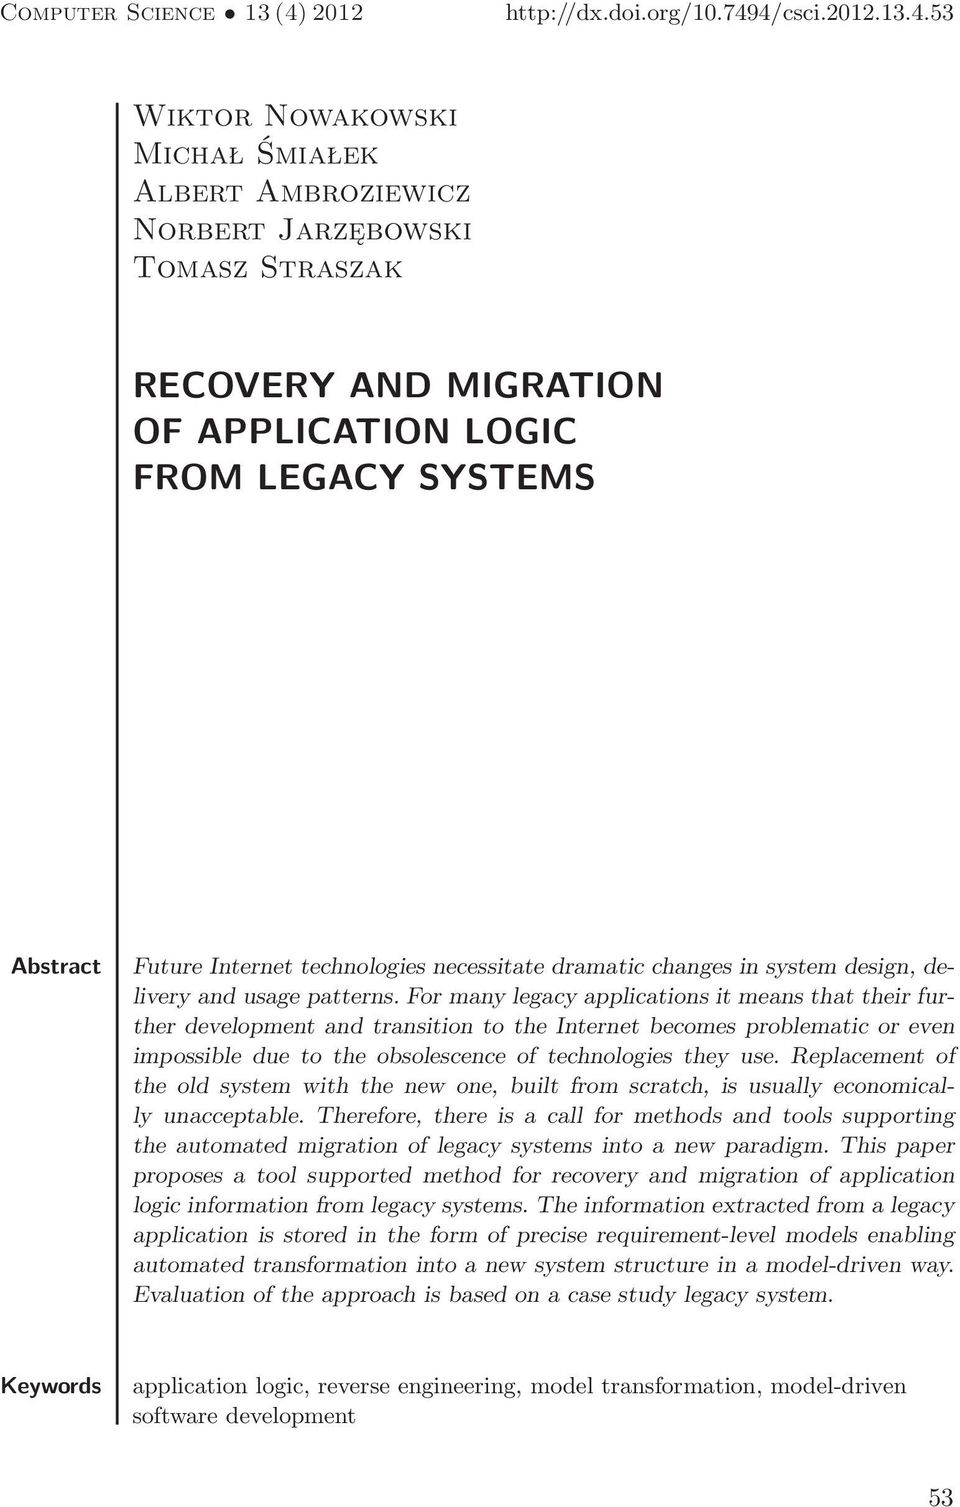 4/csci.2012.13.4.53 Wiktor Nowakowski Michał Śmiałek Albert Ambroziewicz Norbert Jarzębowski Tomasz Straszak RECOVERY AND MIGRATION OF APPLICATION LOGIC FROM LEGACY SYSTEMS Abstract Future Internet